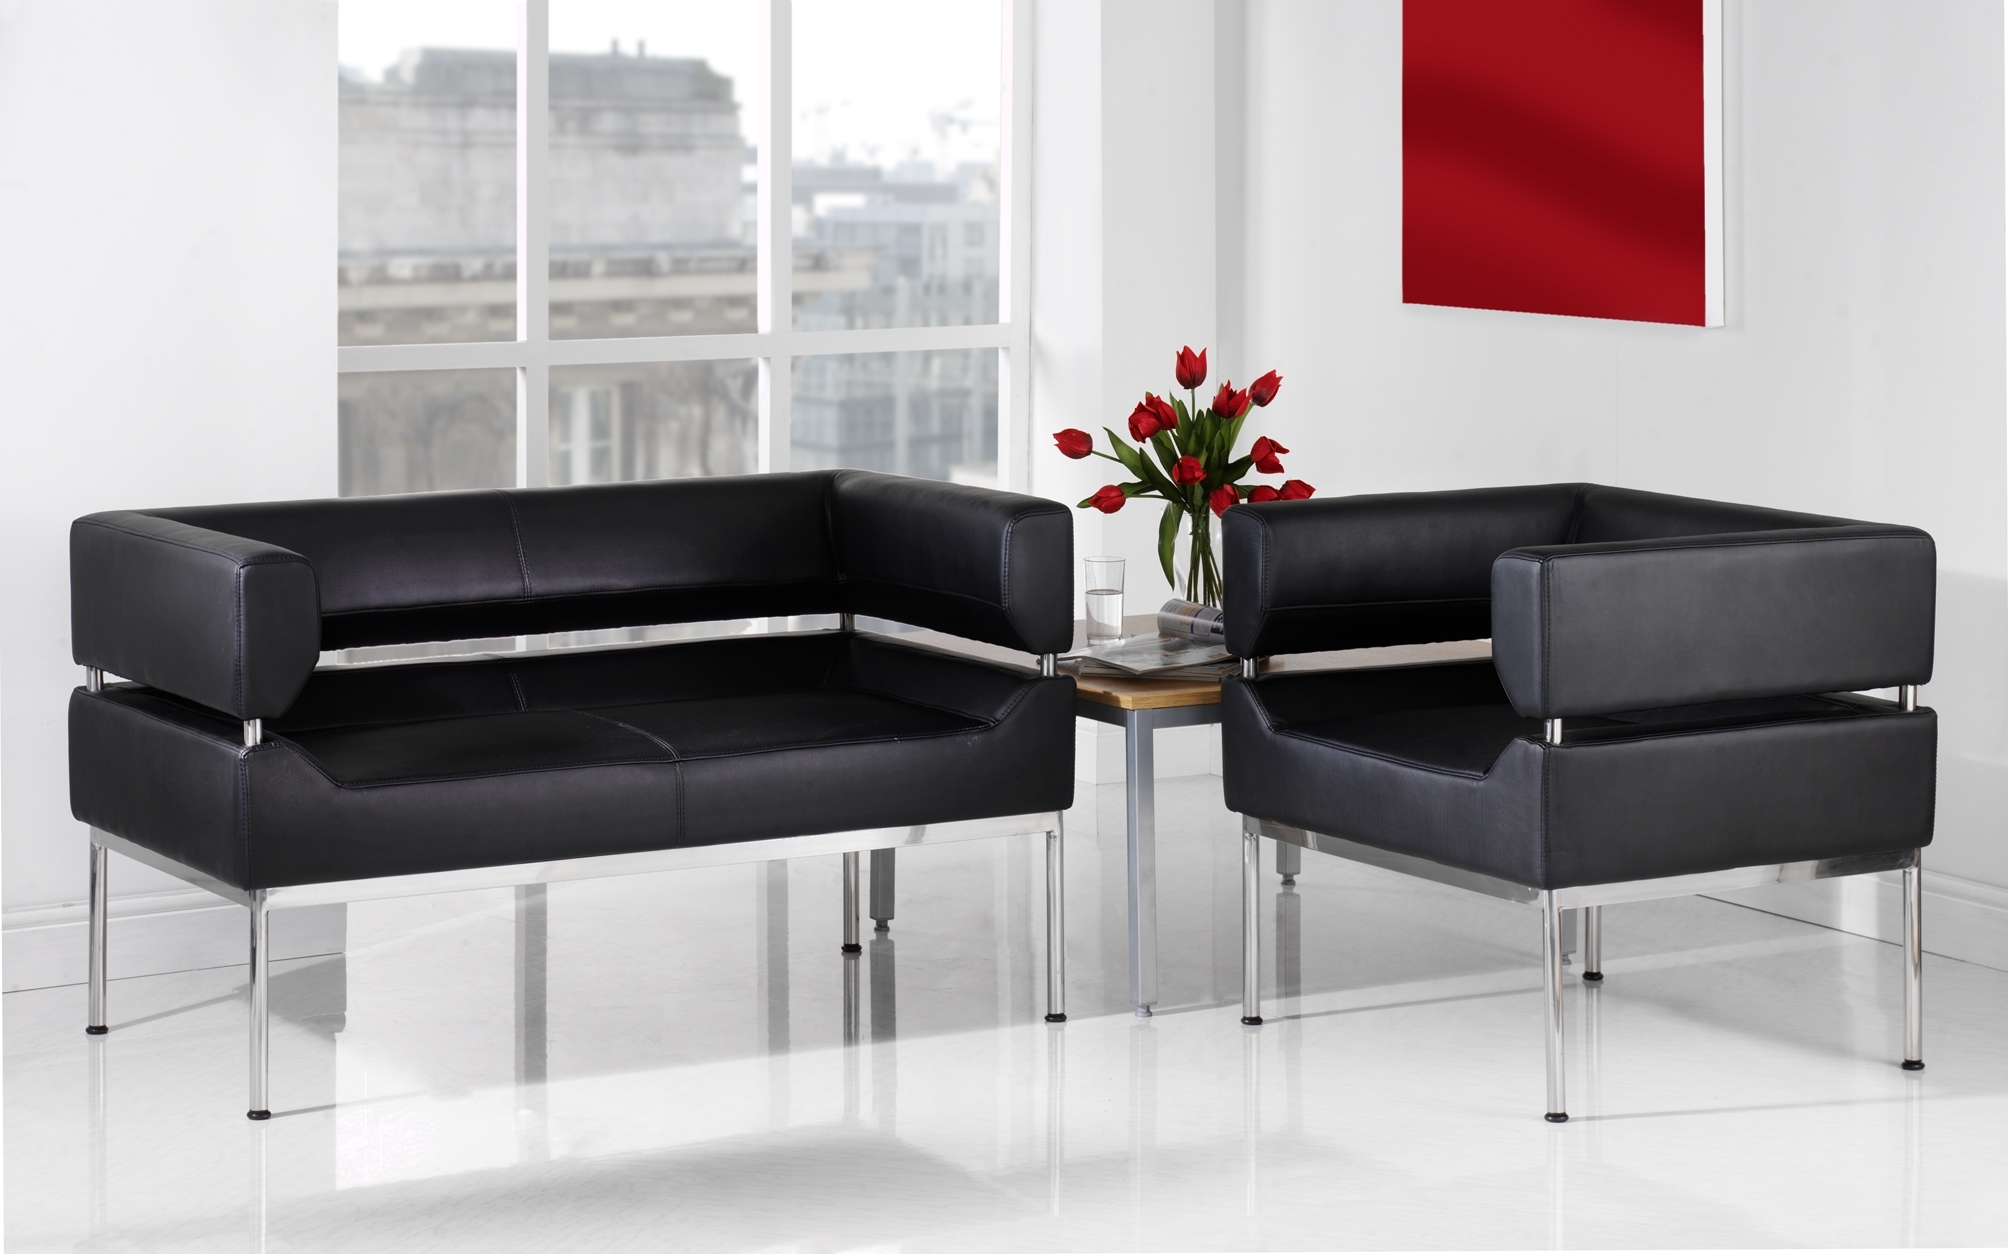 Beautiful Sofas And Chairs 97 On Office Sofa Ideas With Sofas And Pertaining To Recent Office Sofas (View 15 of 15)